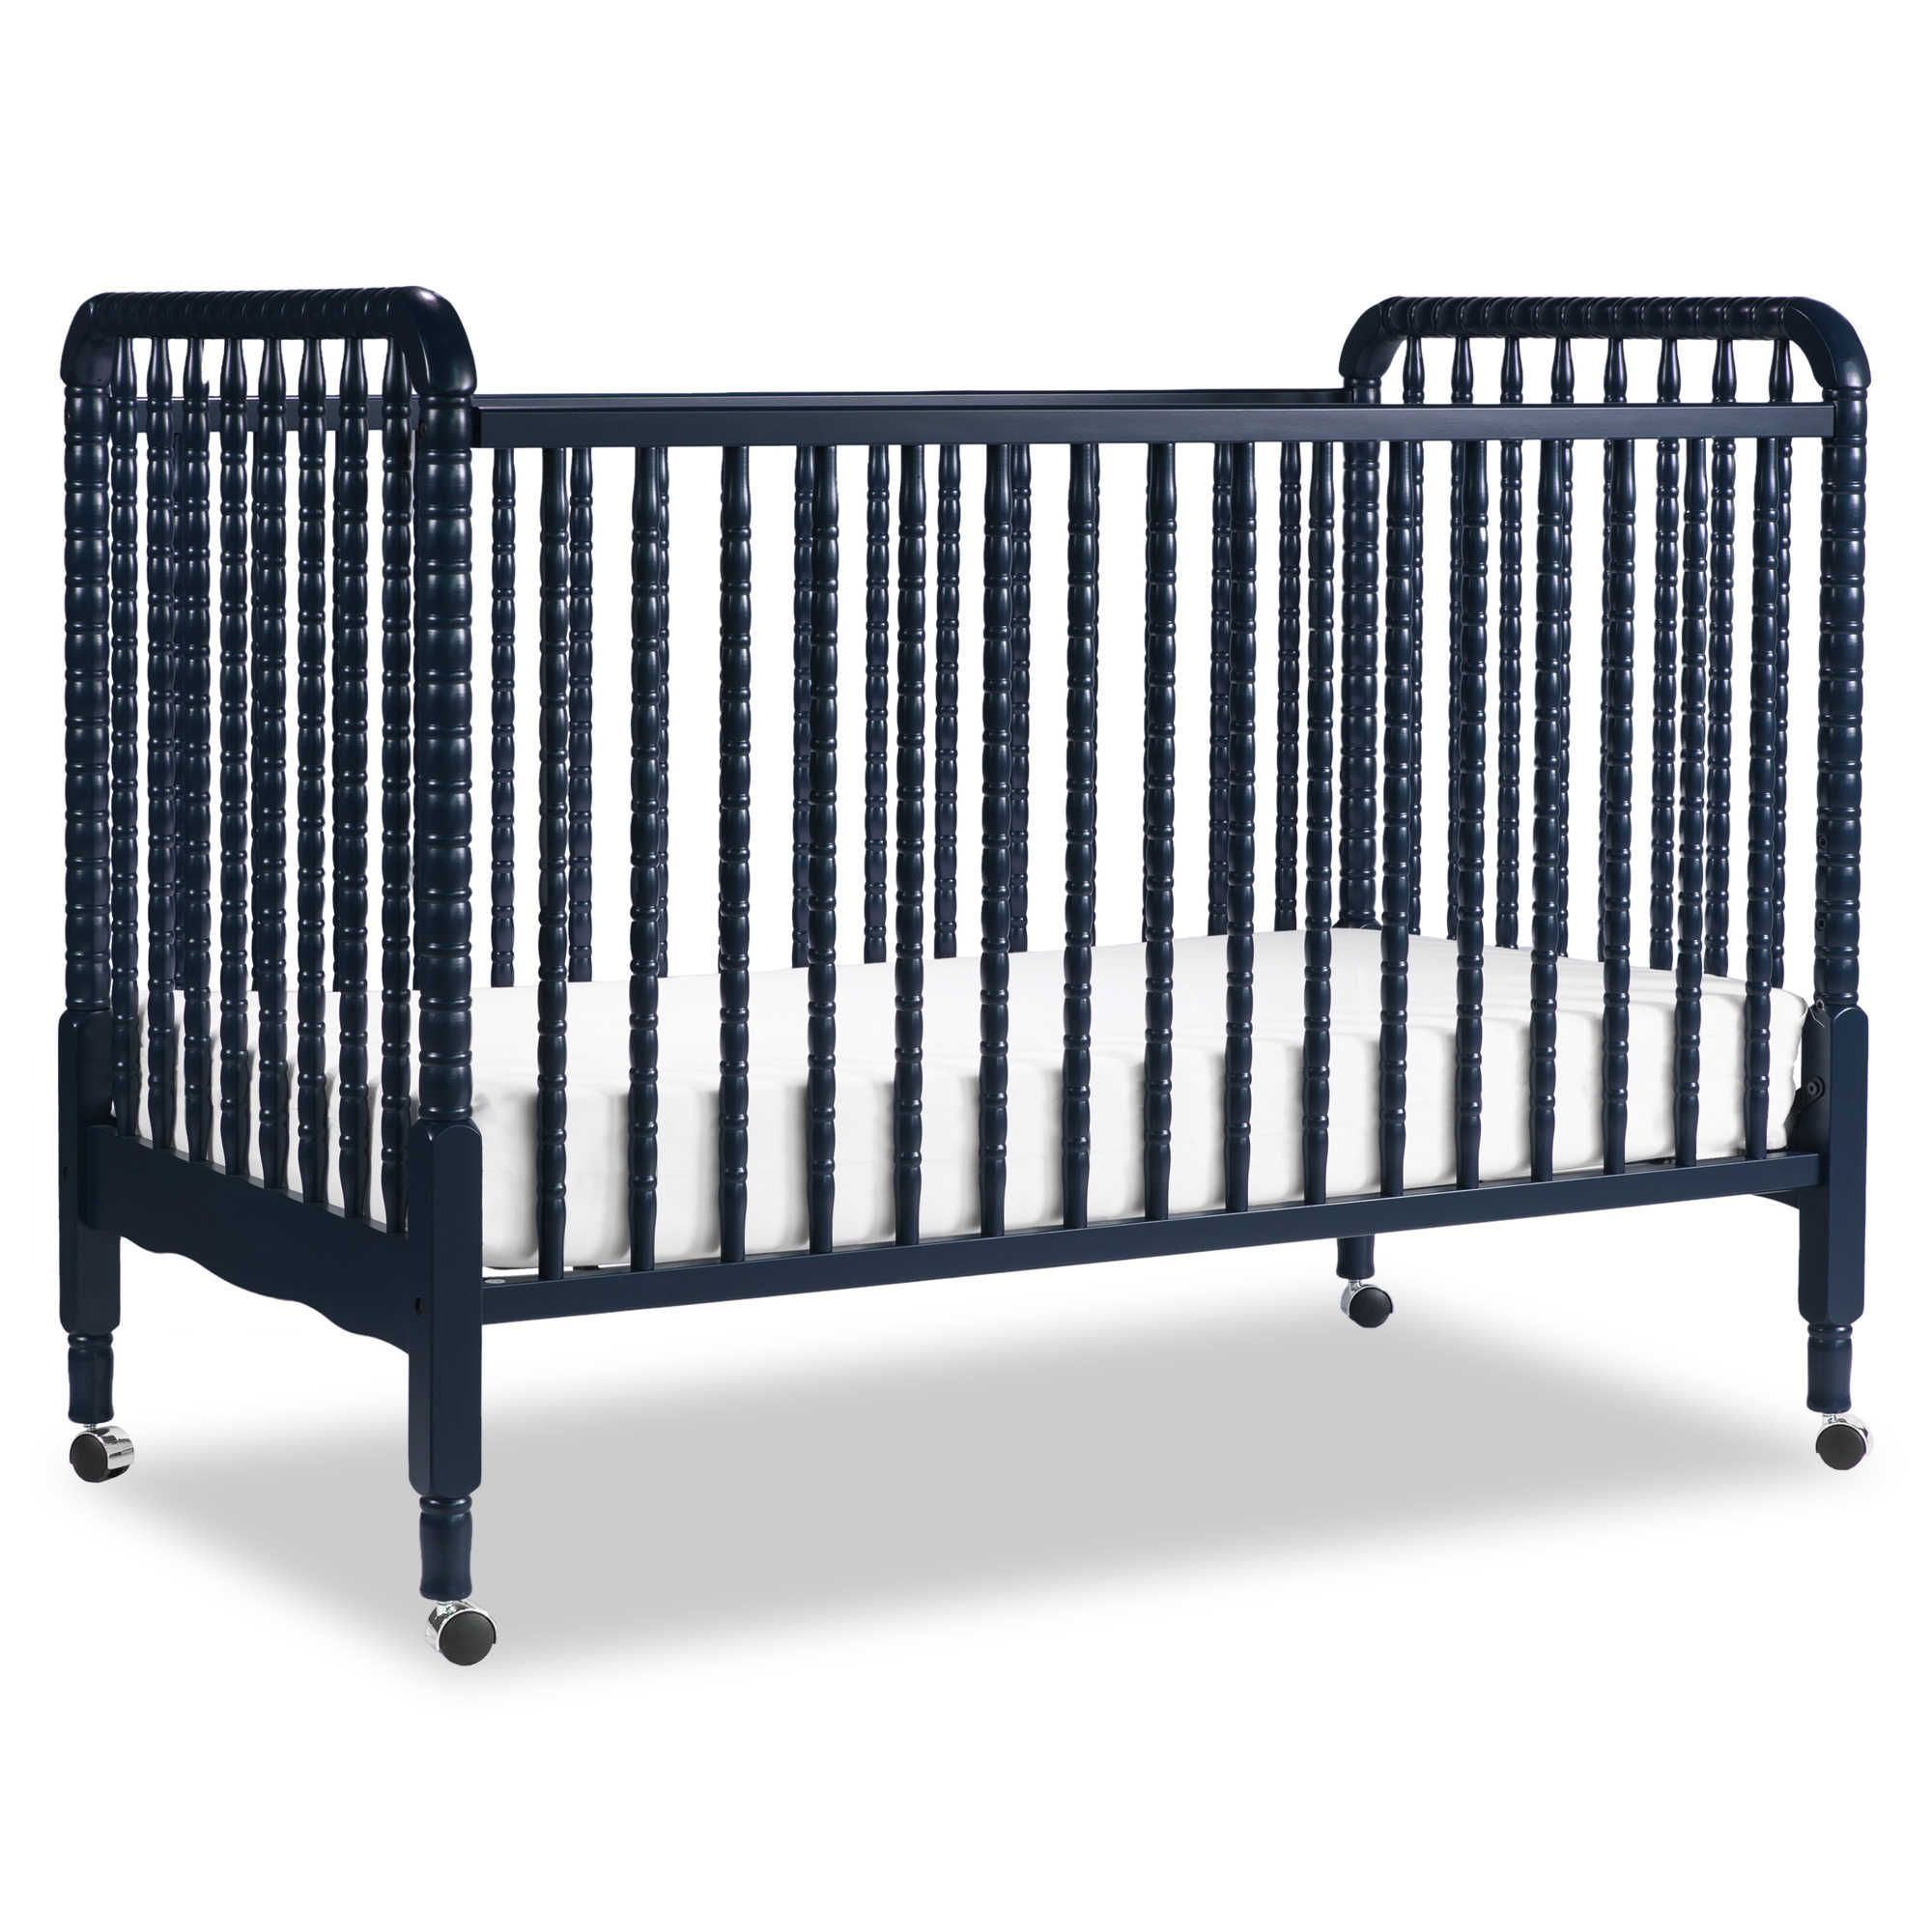 davinci conversion kit crib dp bed convertible com nursery cribs jenny white toddler lind in autumn amazon coversion